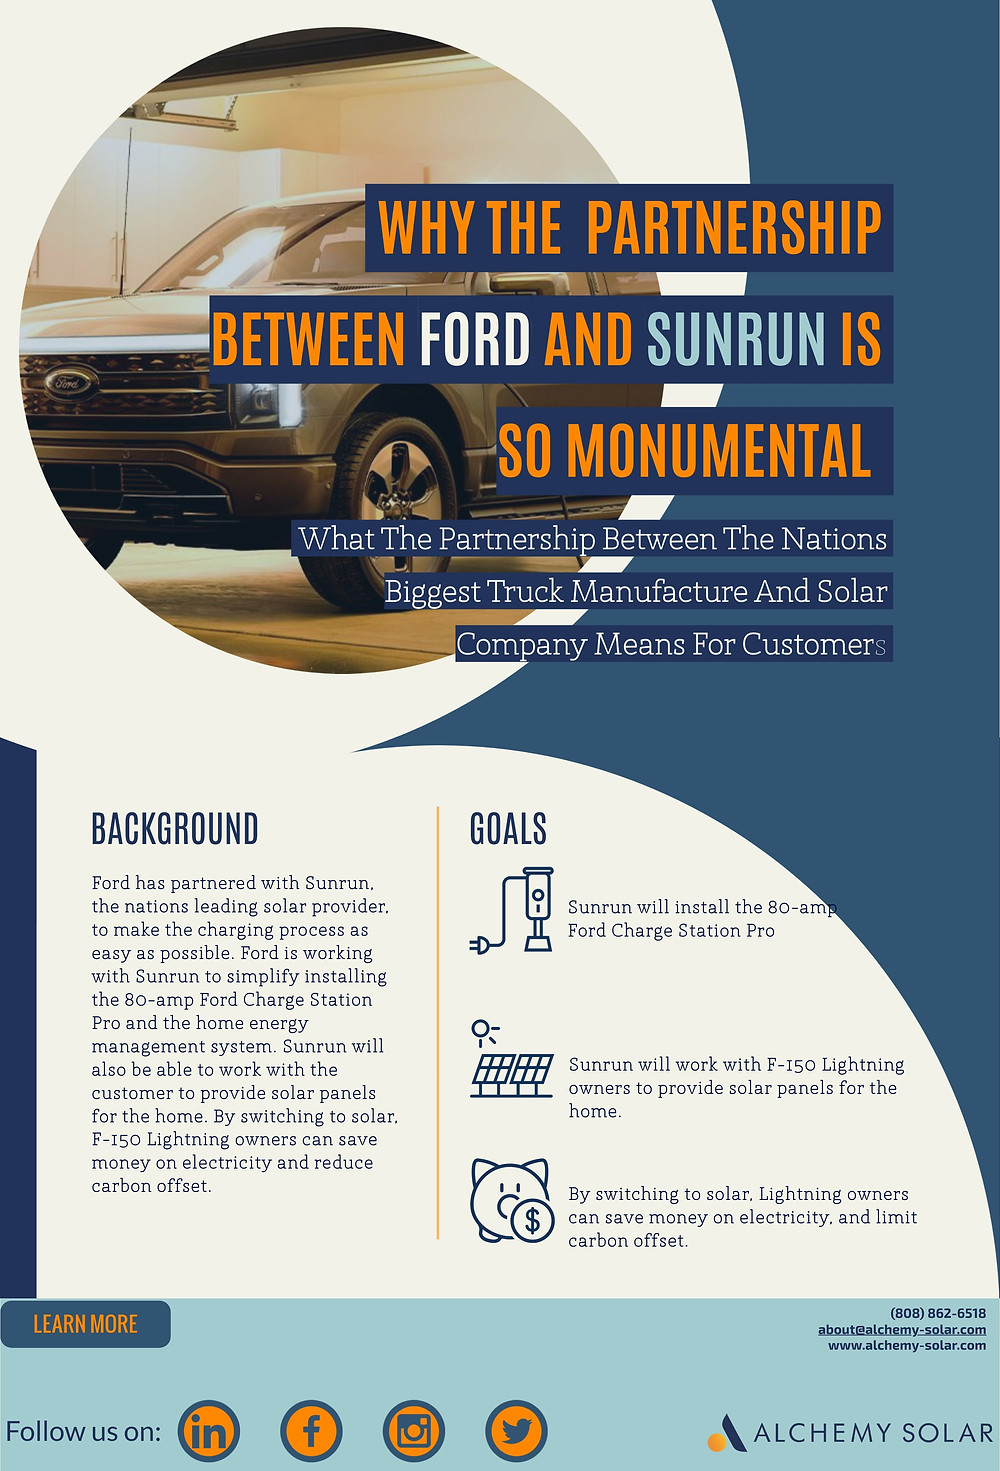 Why the relationship between Sunrun and the Ford F-150 Lightning is so important for the future of home chagrinning and solar